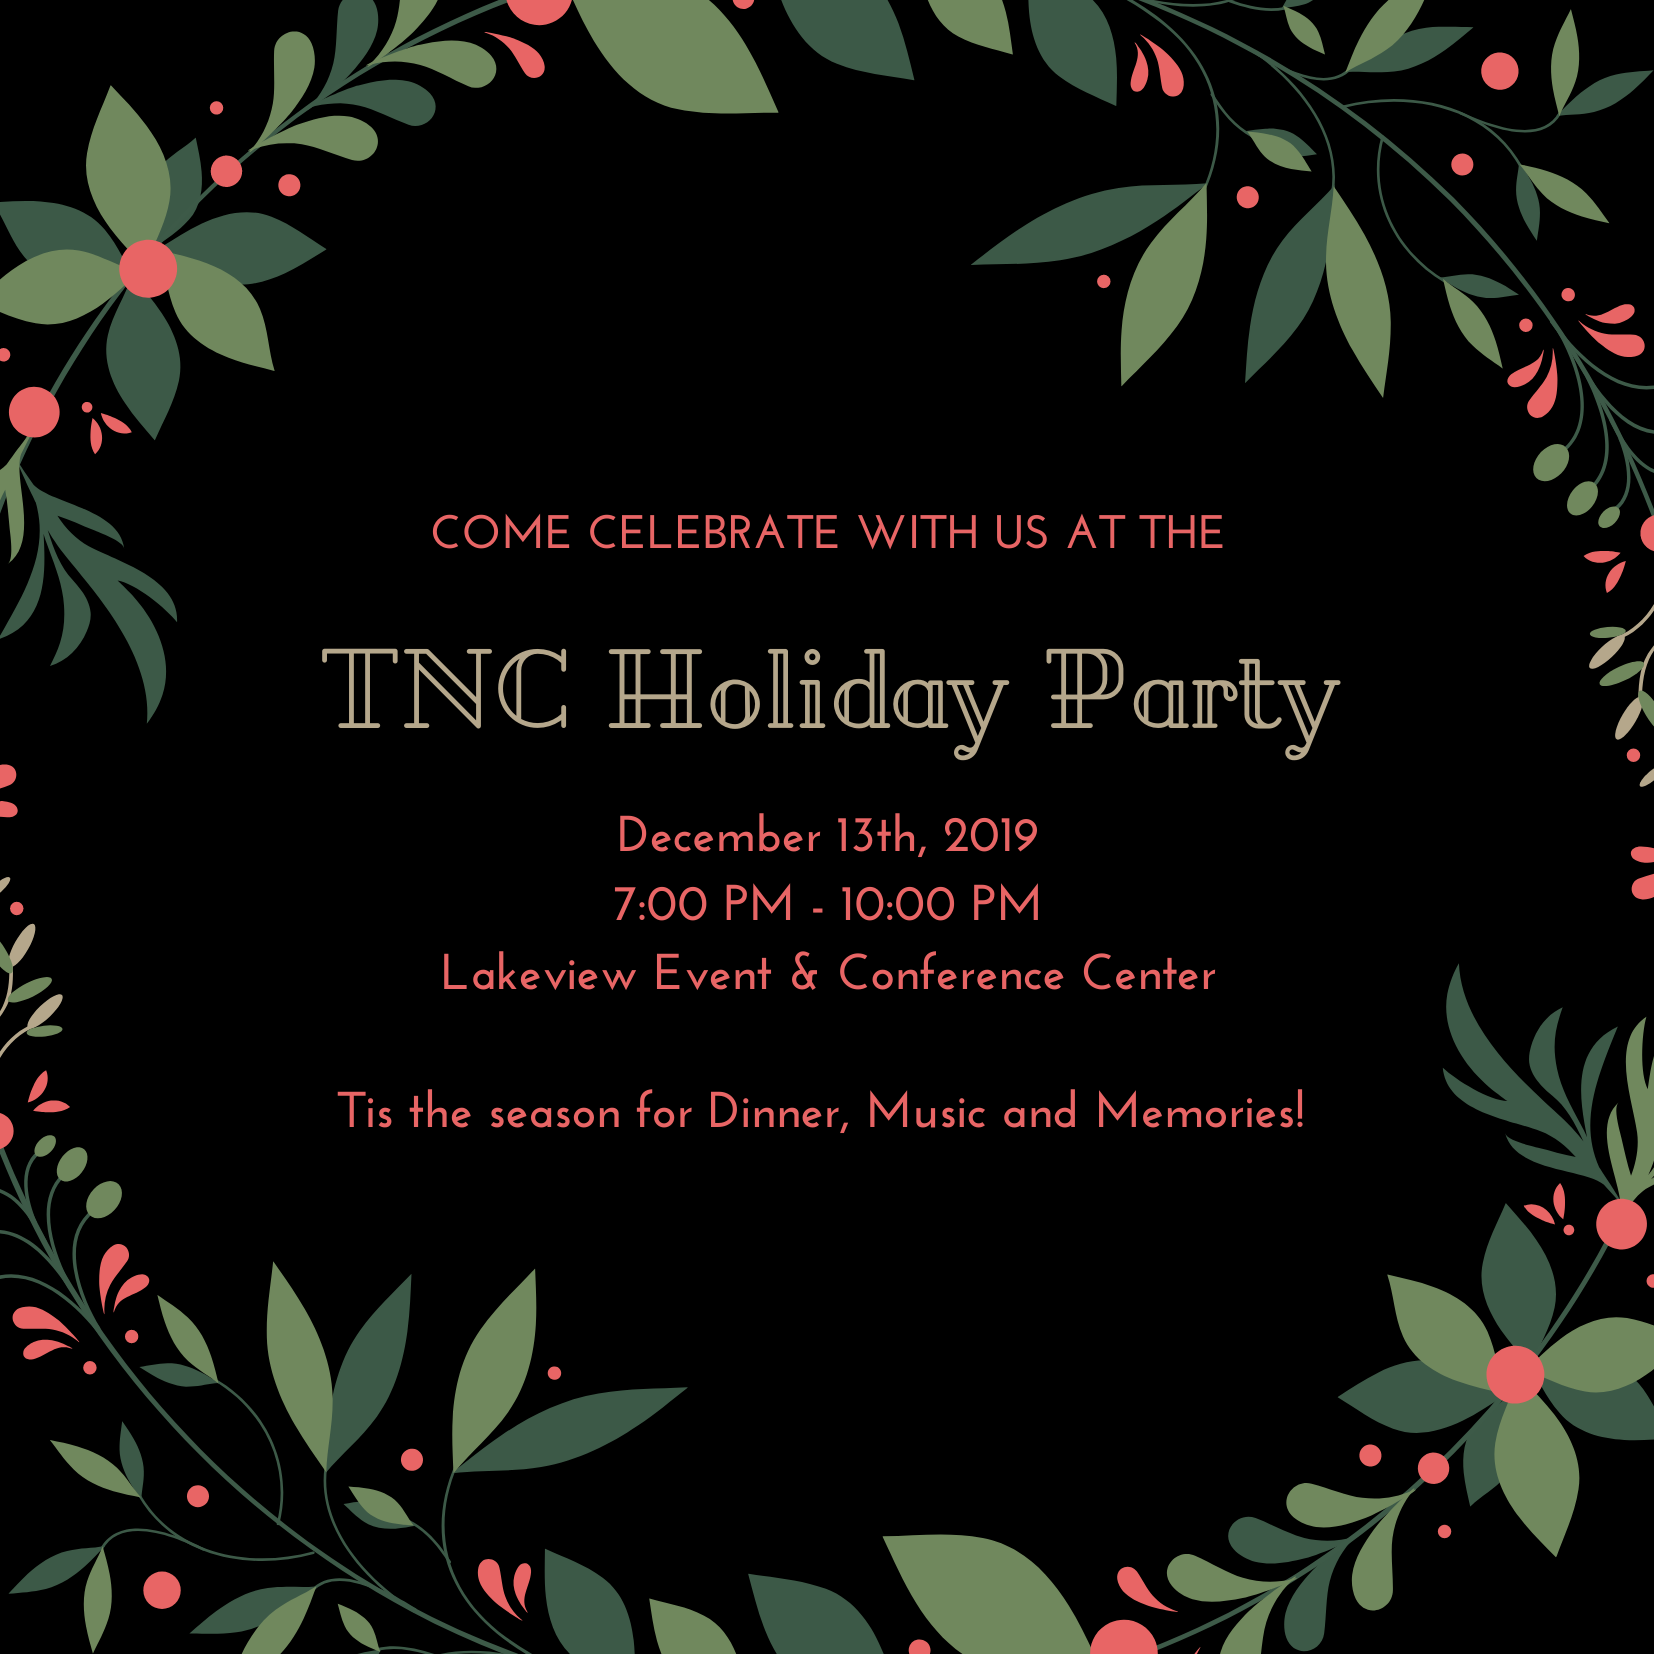 TNC Holiday Party